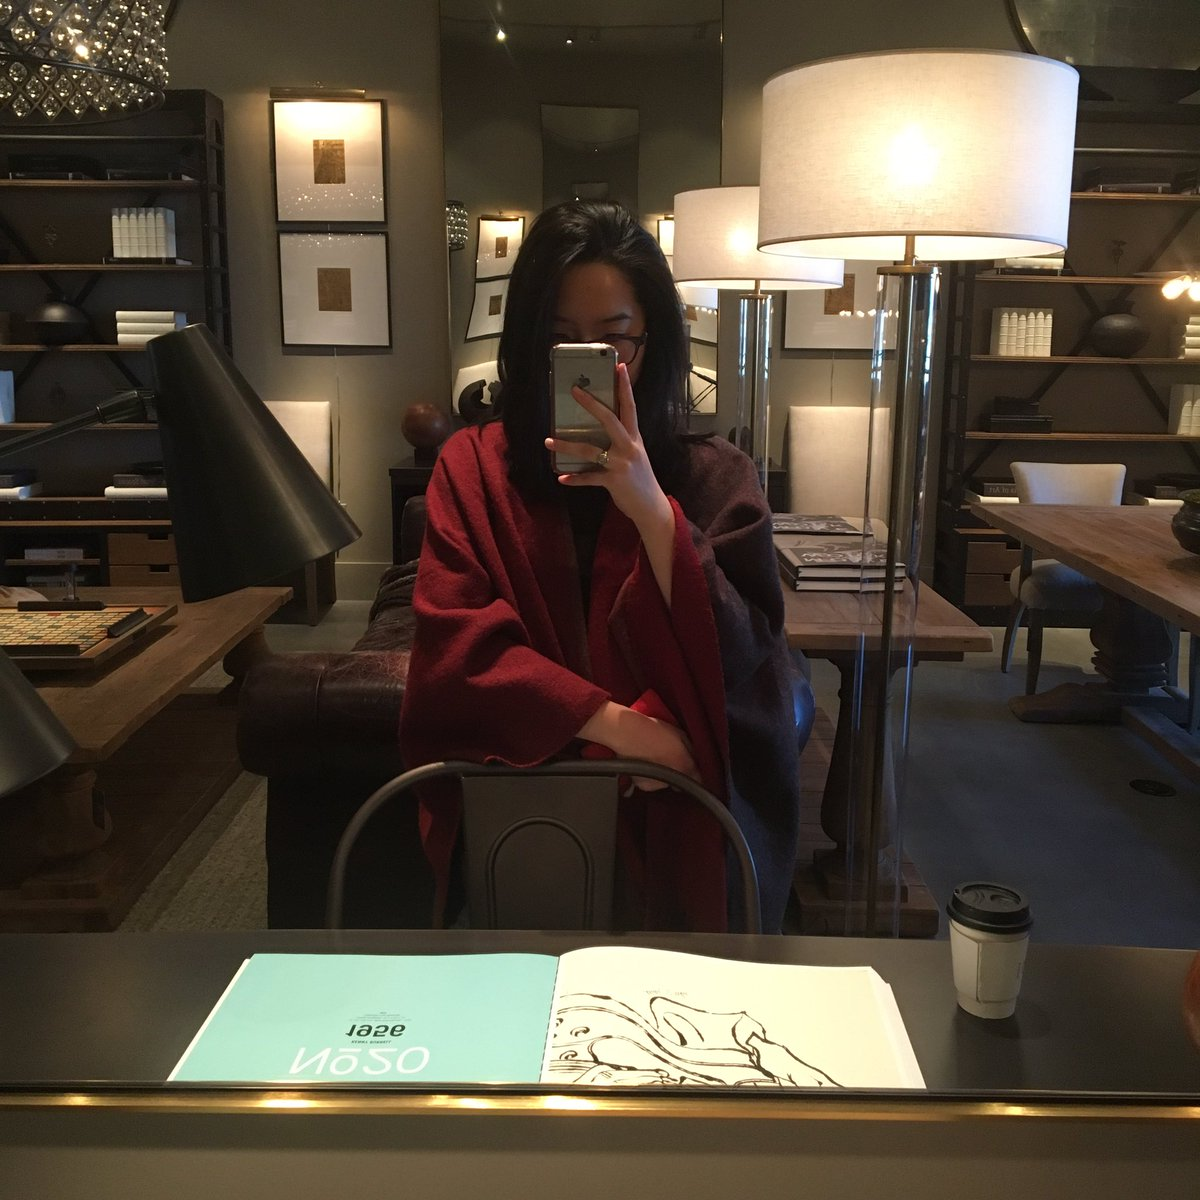 Erin wong on twitter i would like 2 thank restoration hardware at erin wong on twitter i would like 2 thank restoration hardware at yorkdale for single handedly restoring my inner peace ccuart Choice Image